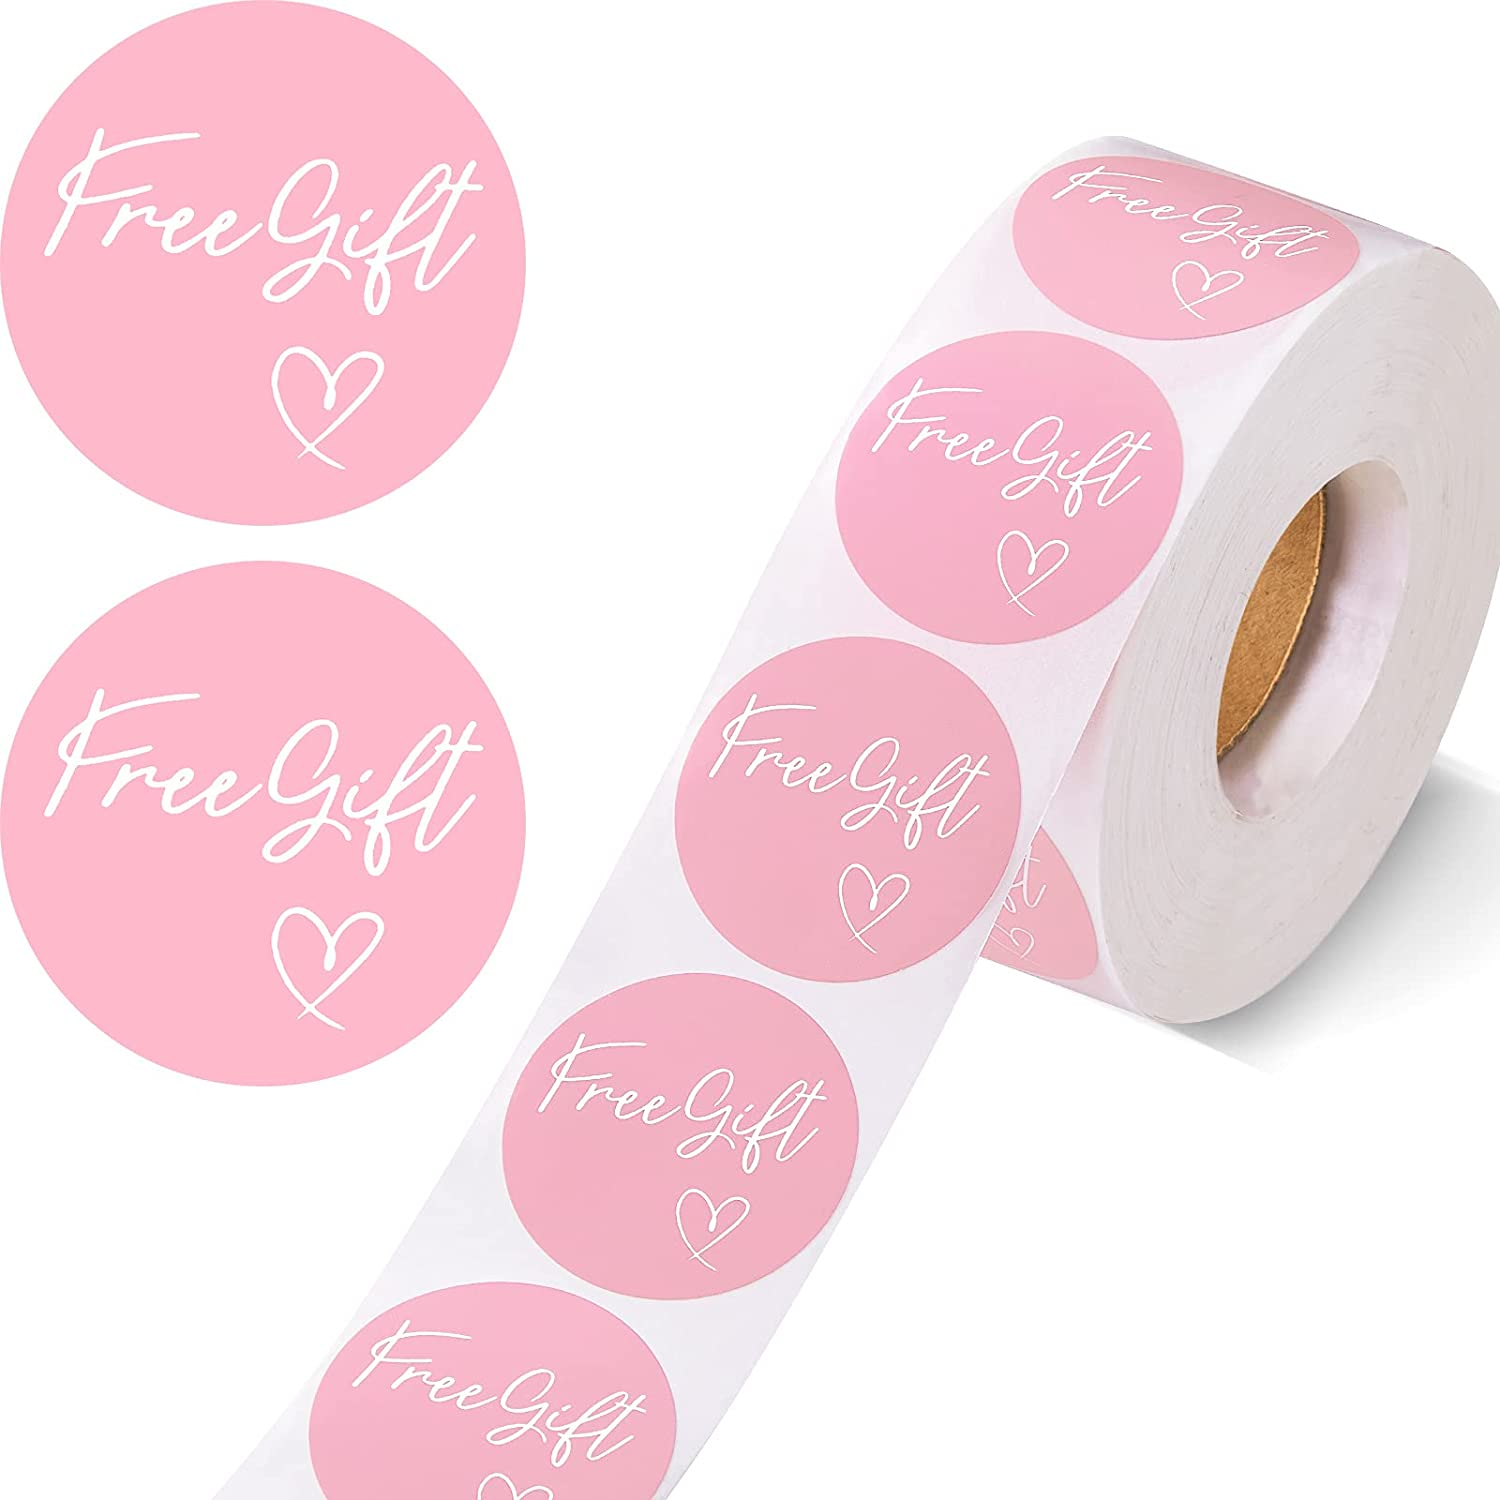 1000 Pieces Customer Appreciation Stickers Small Business Sticker Roll Round Self-Adhesive Stickers Labels for Packing Mailing Envelopes Postcards, 1.5 Inch (Pink Background)